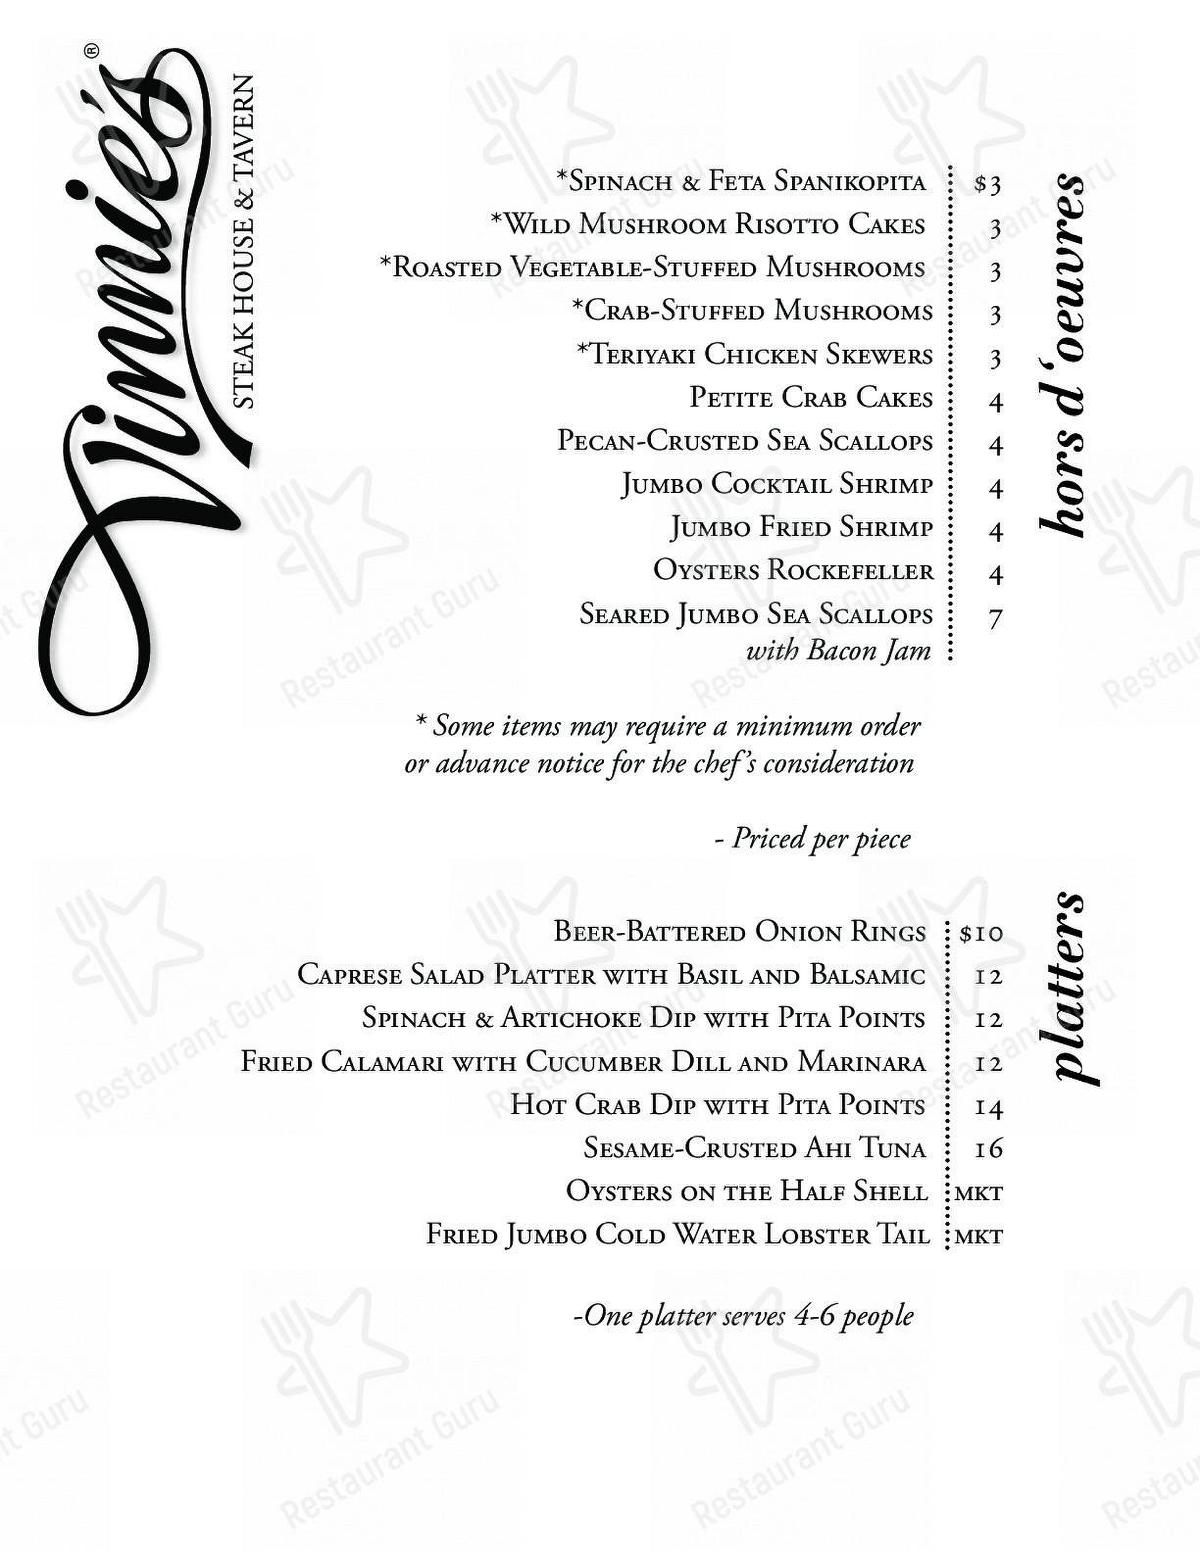 Limited menu for the Vinnie's Steak House & Tavern steakhouse